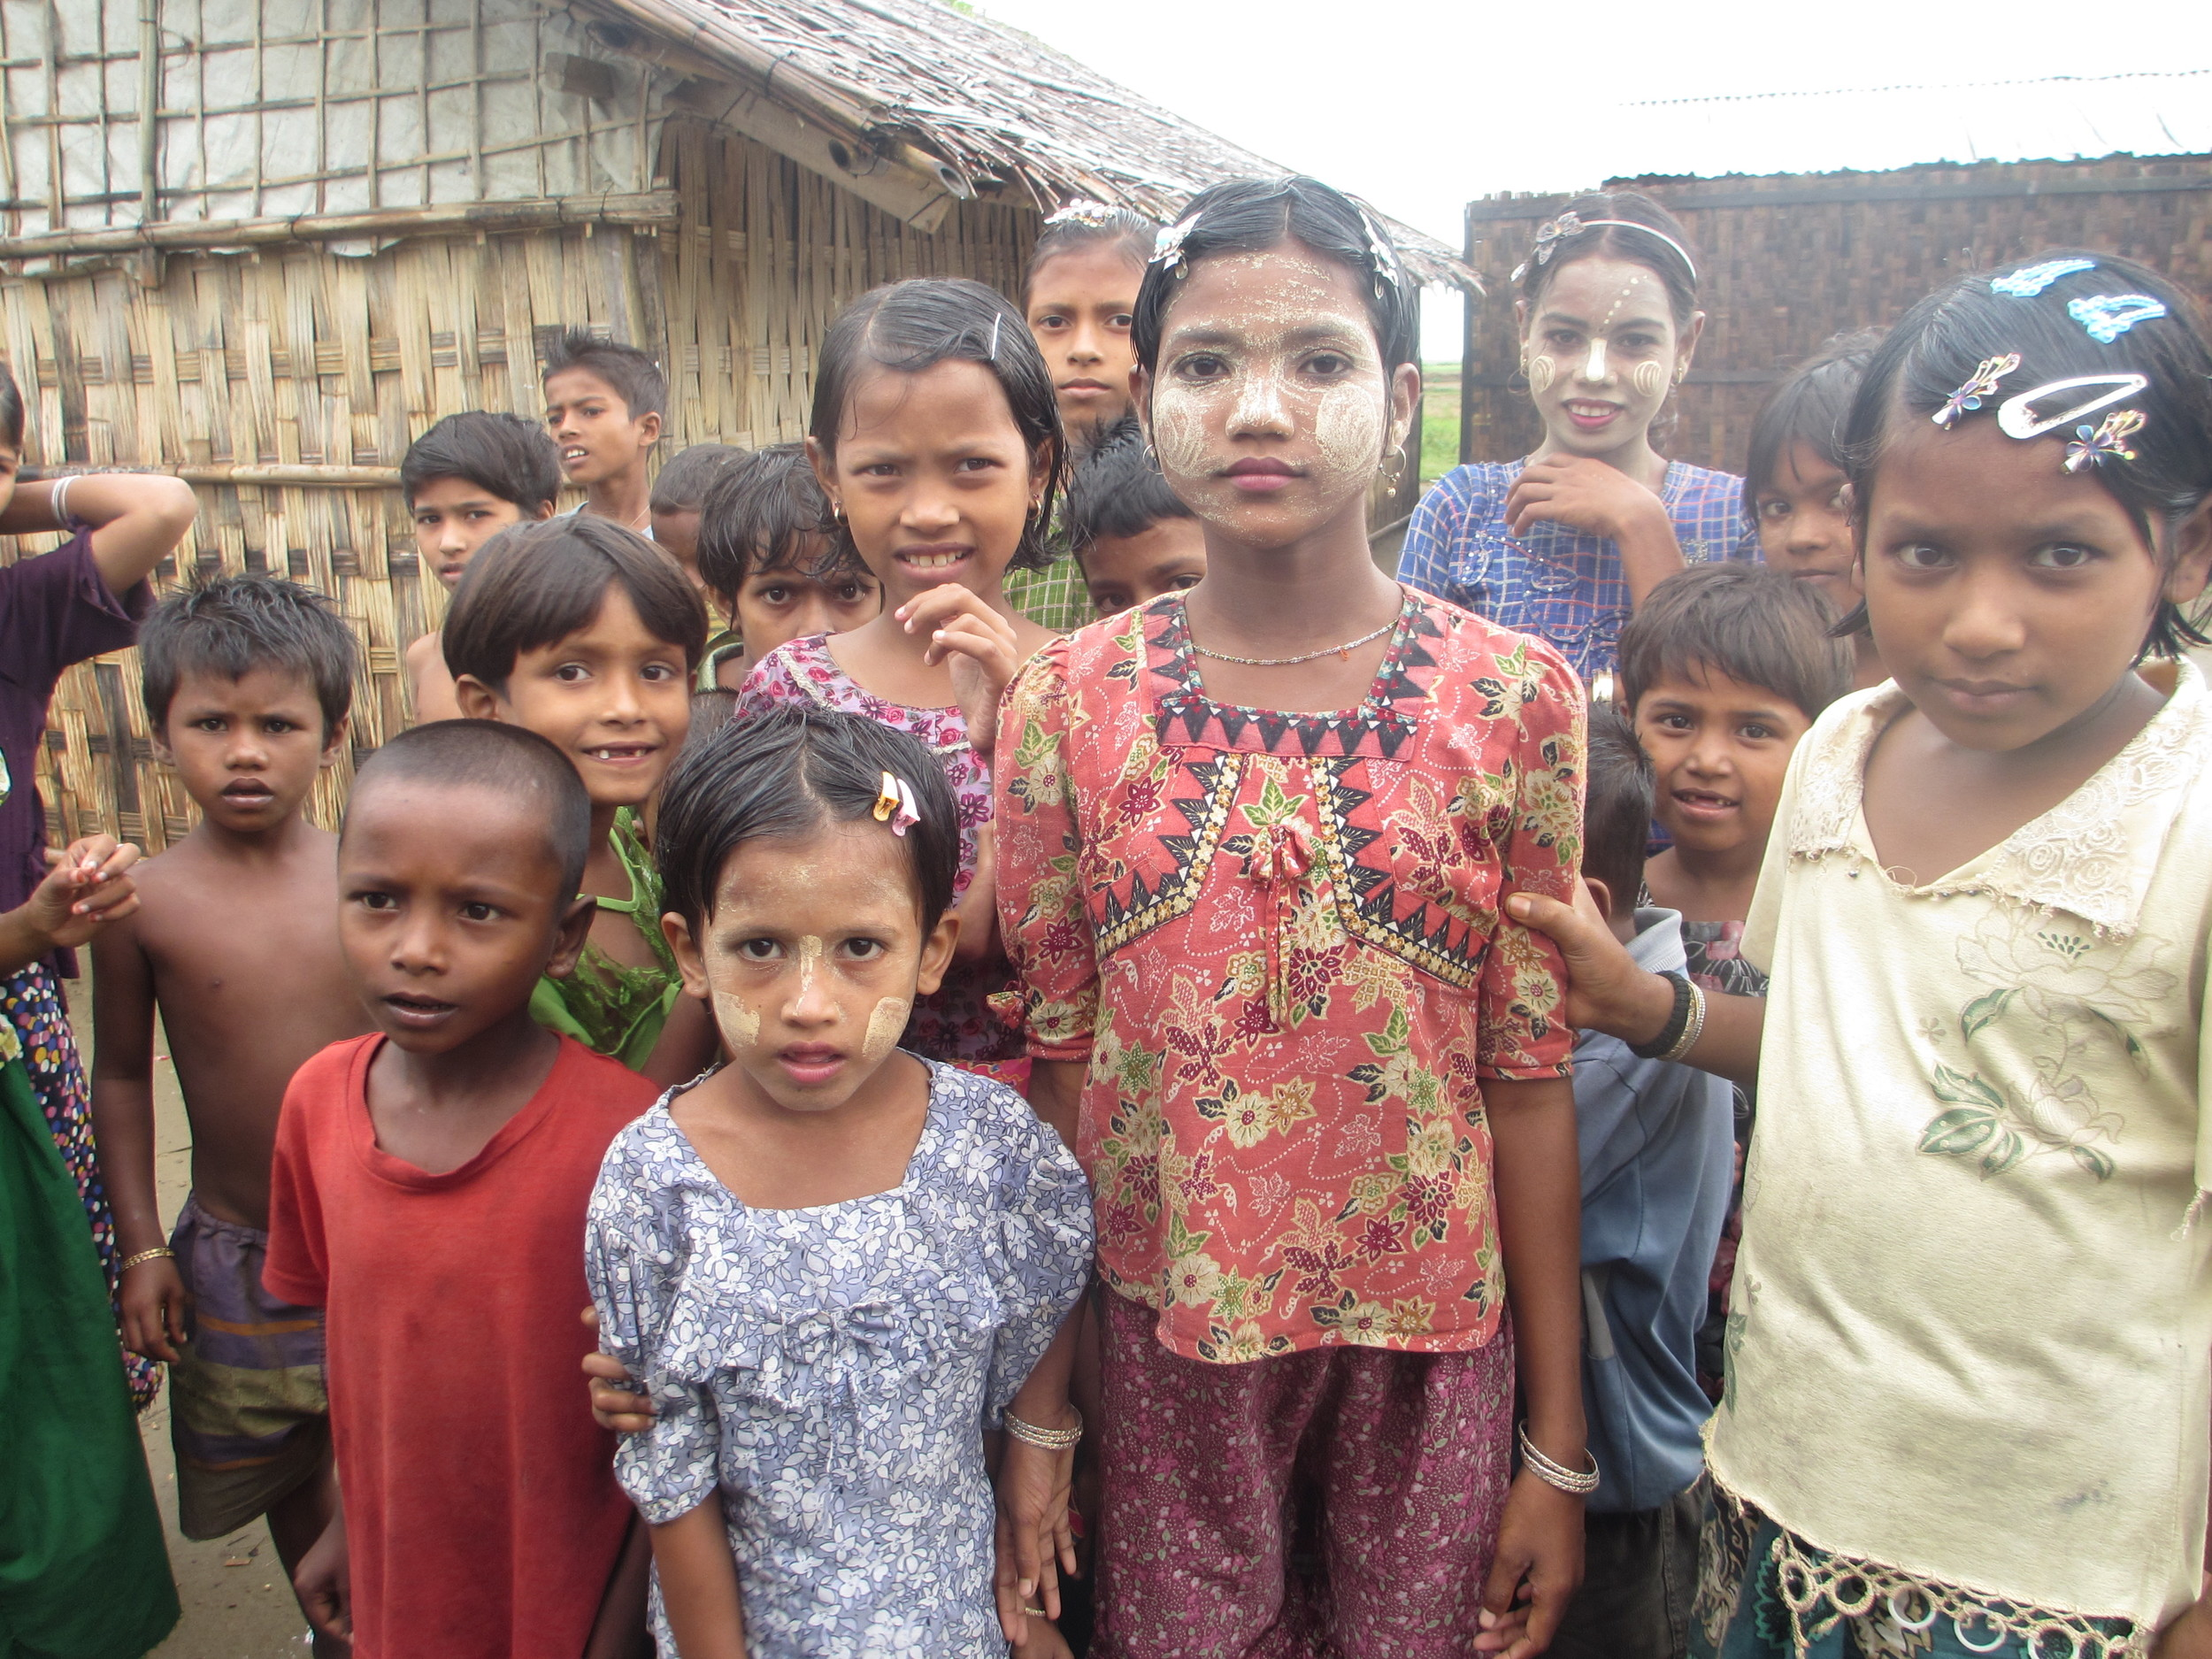 RI went to Rakhine State to document the situation of the Rohingya six months after several NGOs were run out of Sittwe and Rakhine State. We focused on learning more about preparations for a citizenship verification process.